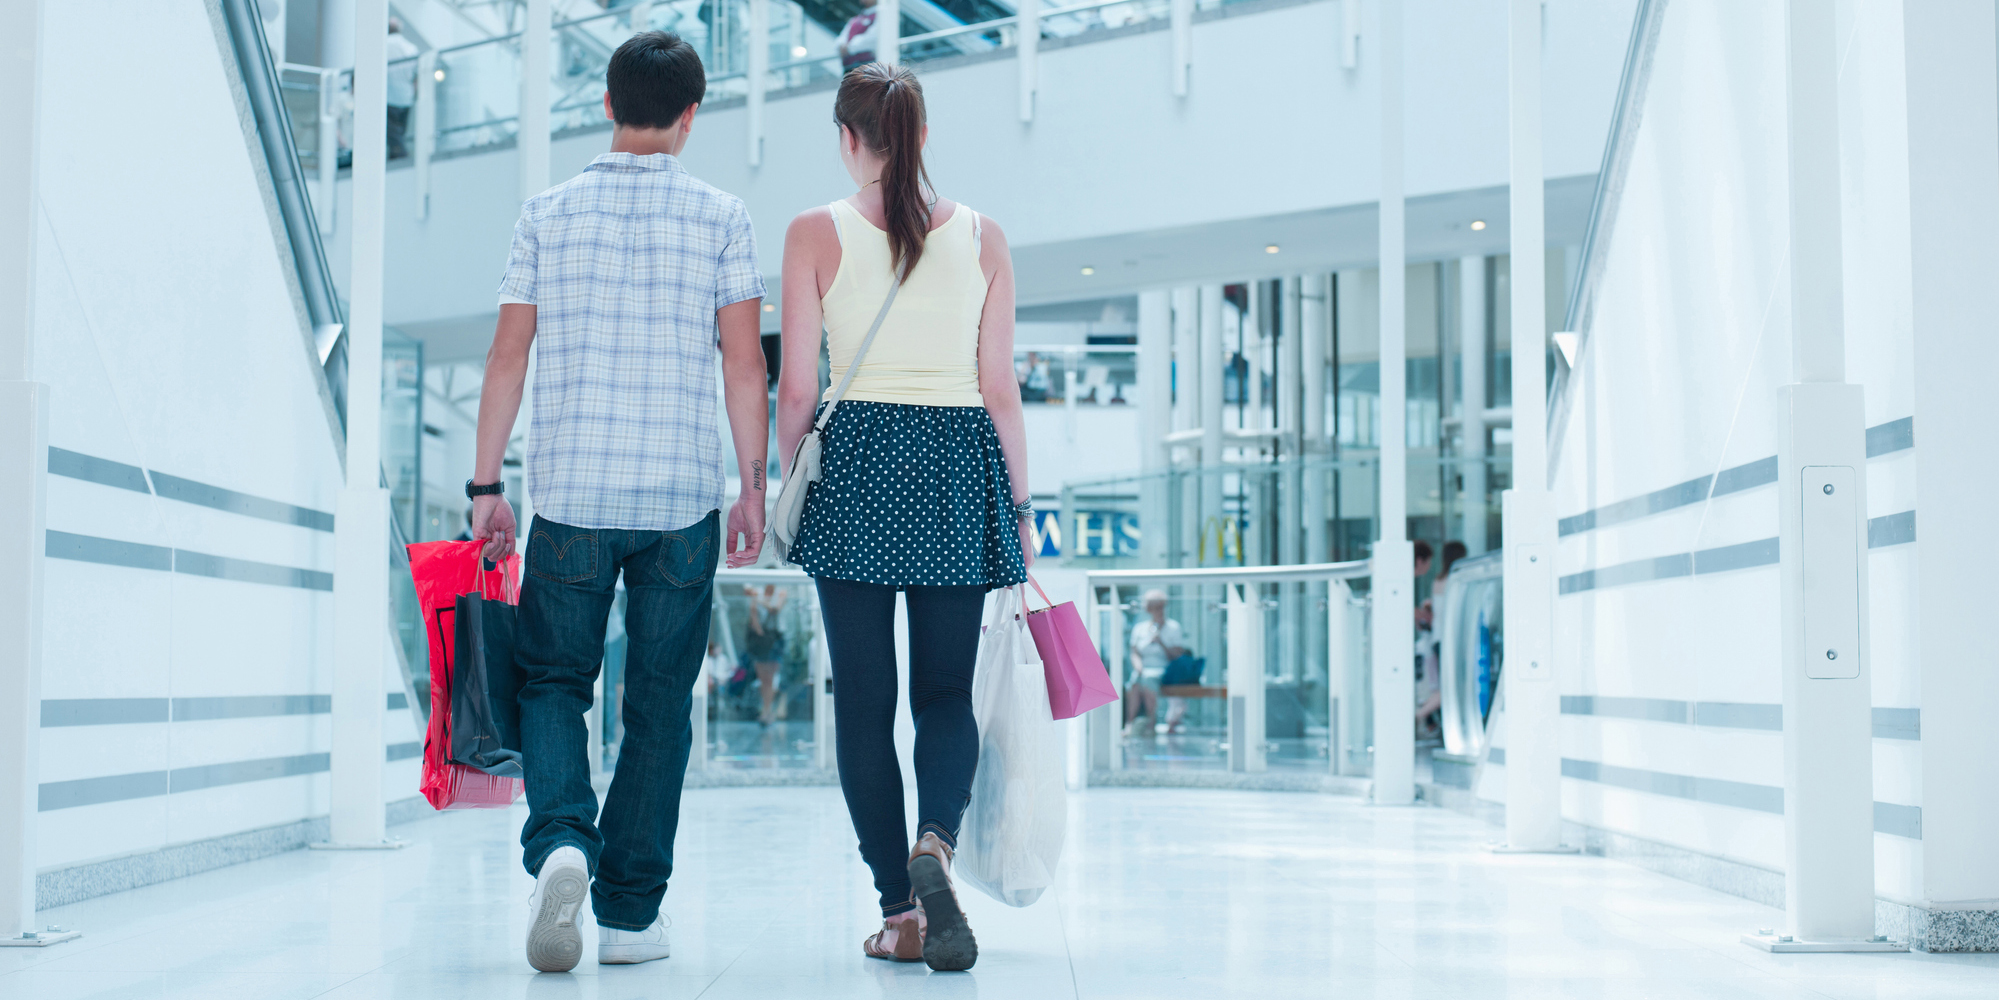 As coronavirus keeps consumers fearful of indoor shopping centers, retailers and mall operators must offer compelling reasons to shop.